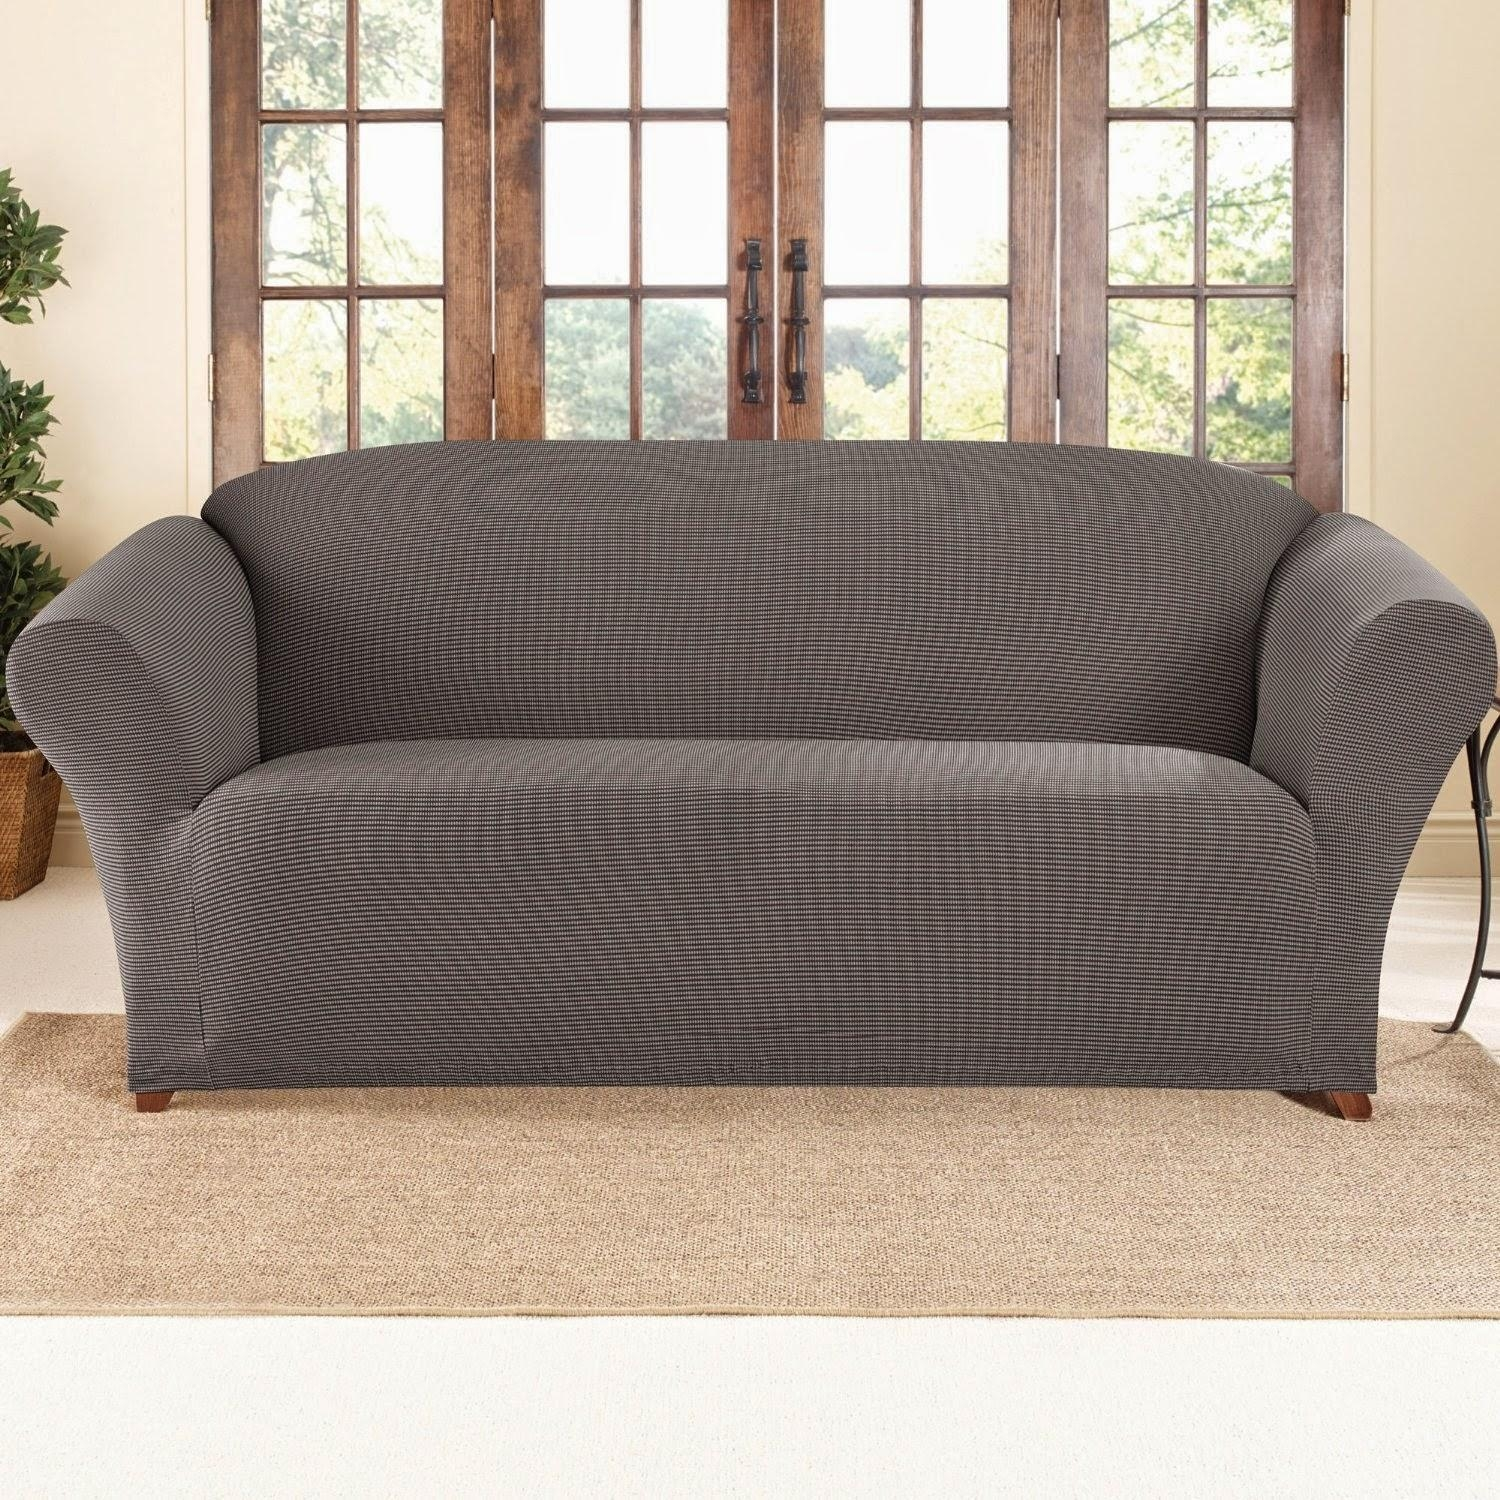 Furniture: Wonderful Walmart Couch Covers Design For Alluring Regarding Suede Slipcovers For Sofas (View 6 of 20)